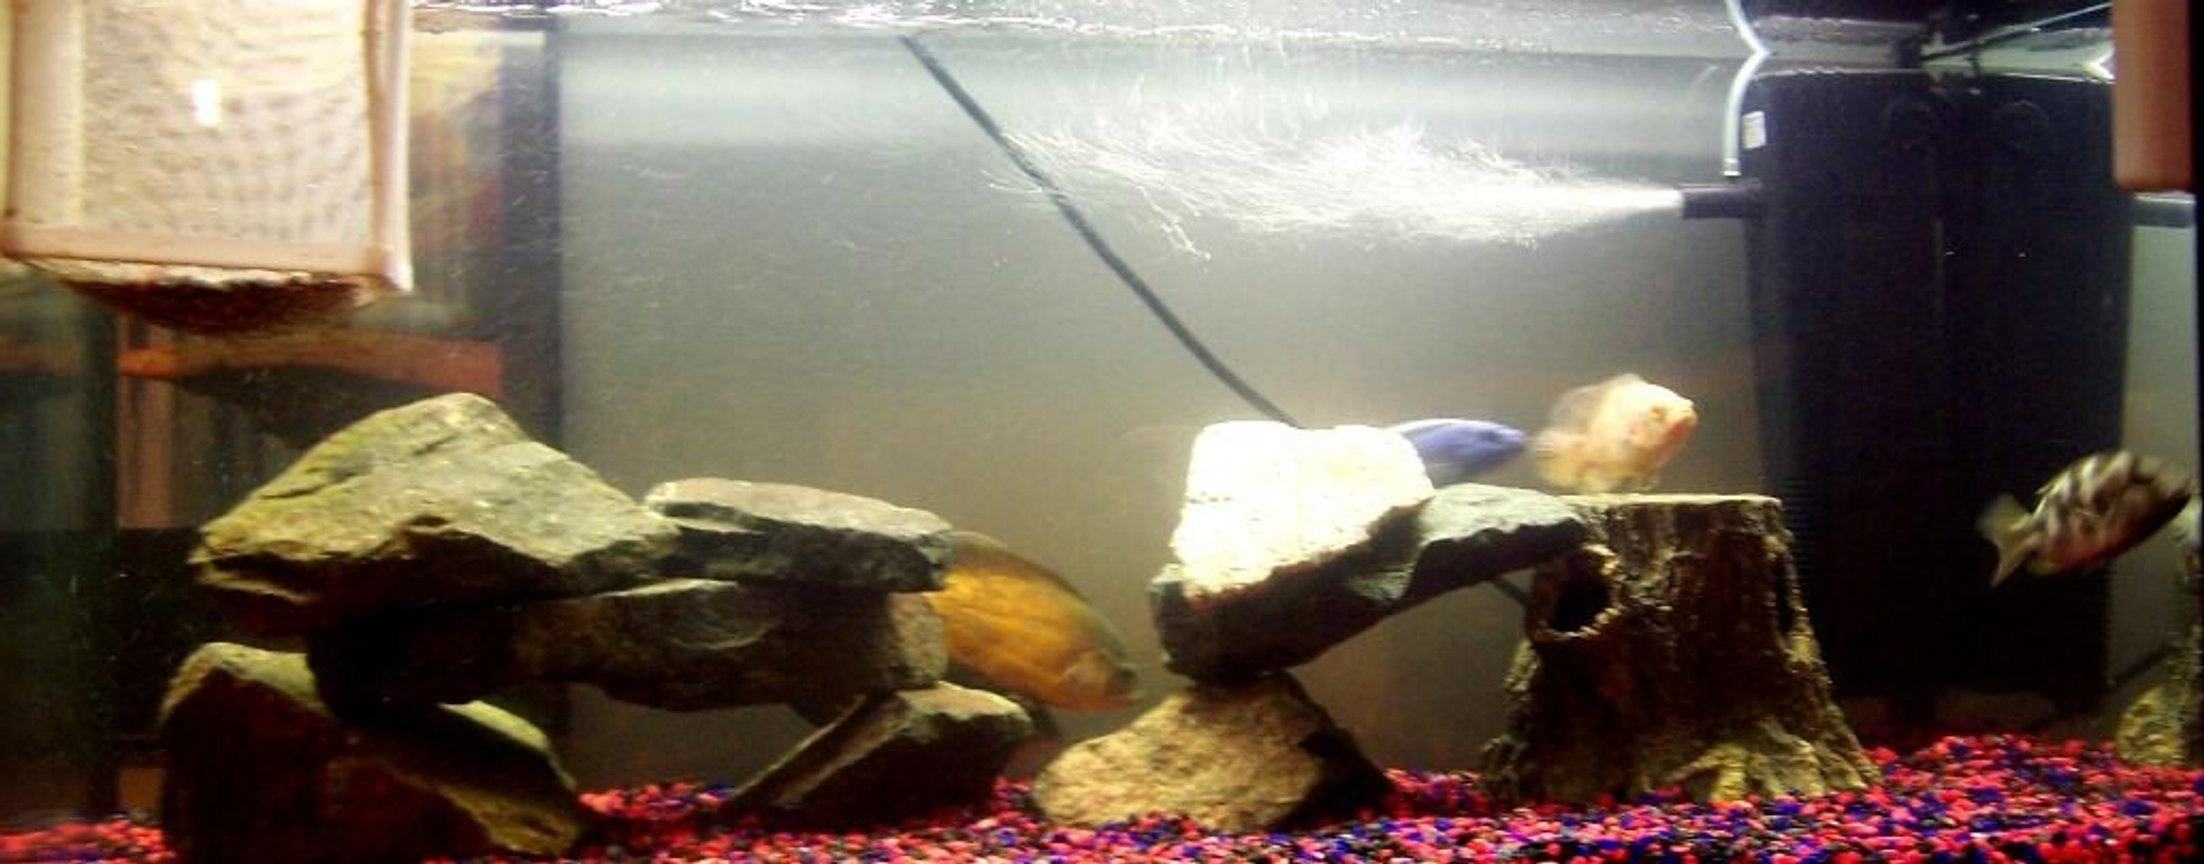 250 gallons freshwater fish tank (mostly fish and non-living decorations) - Tank =)